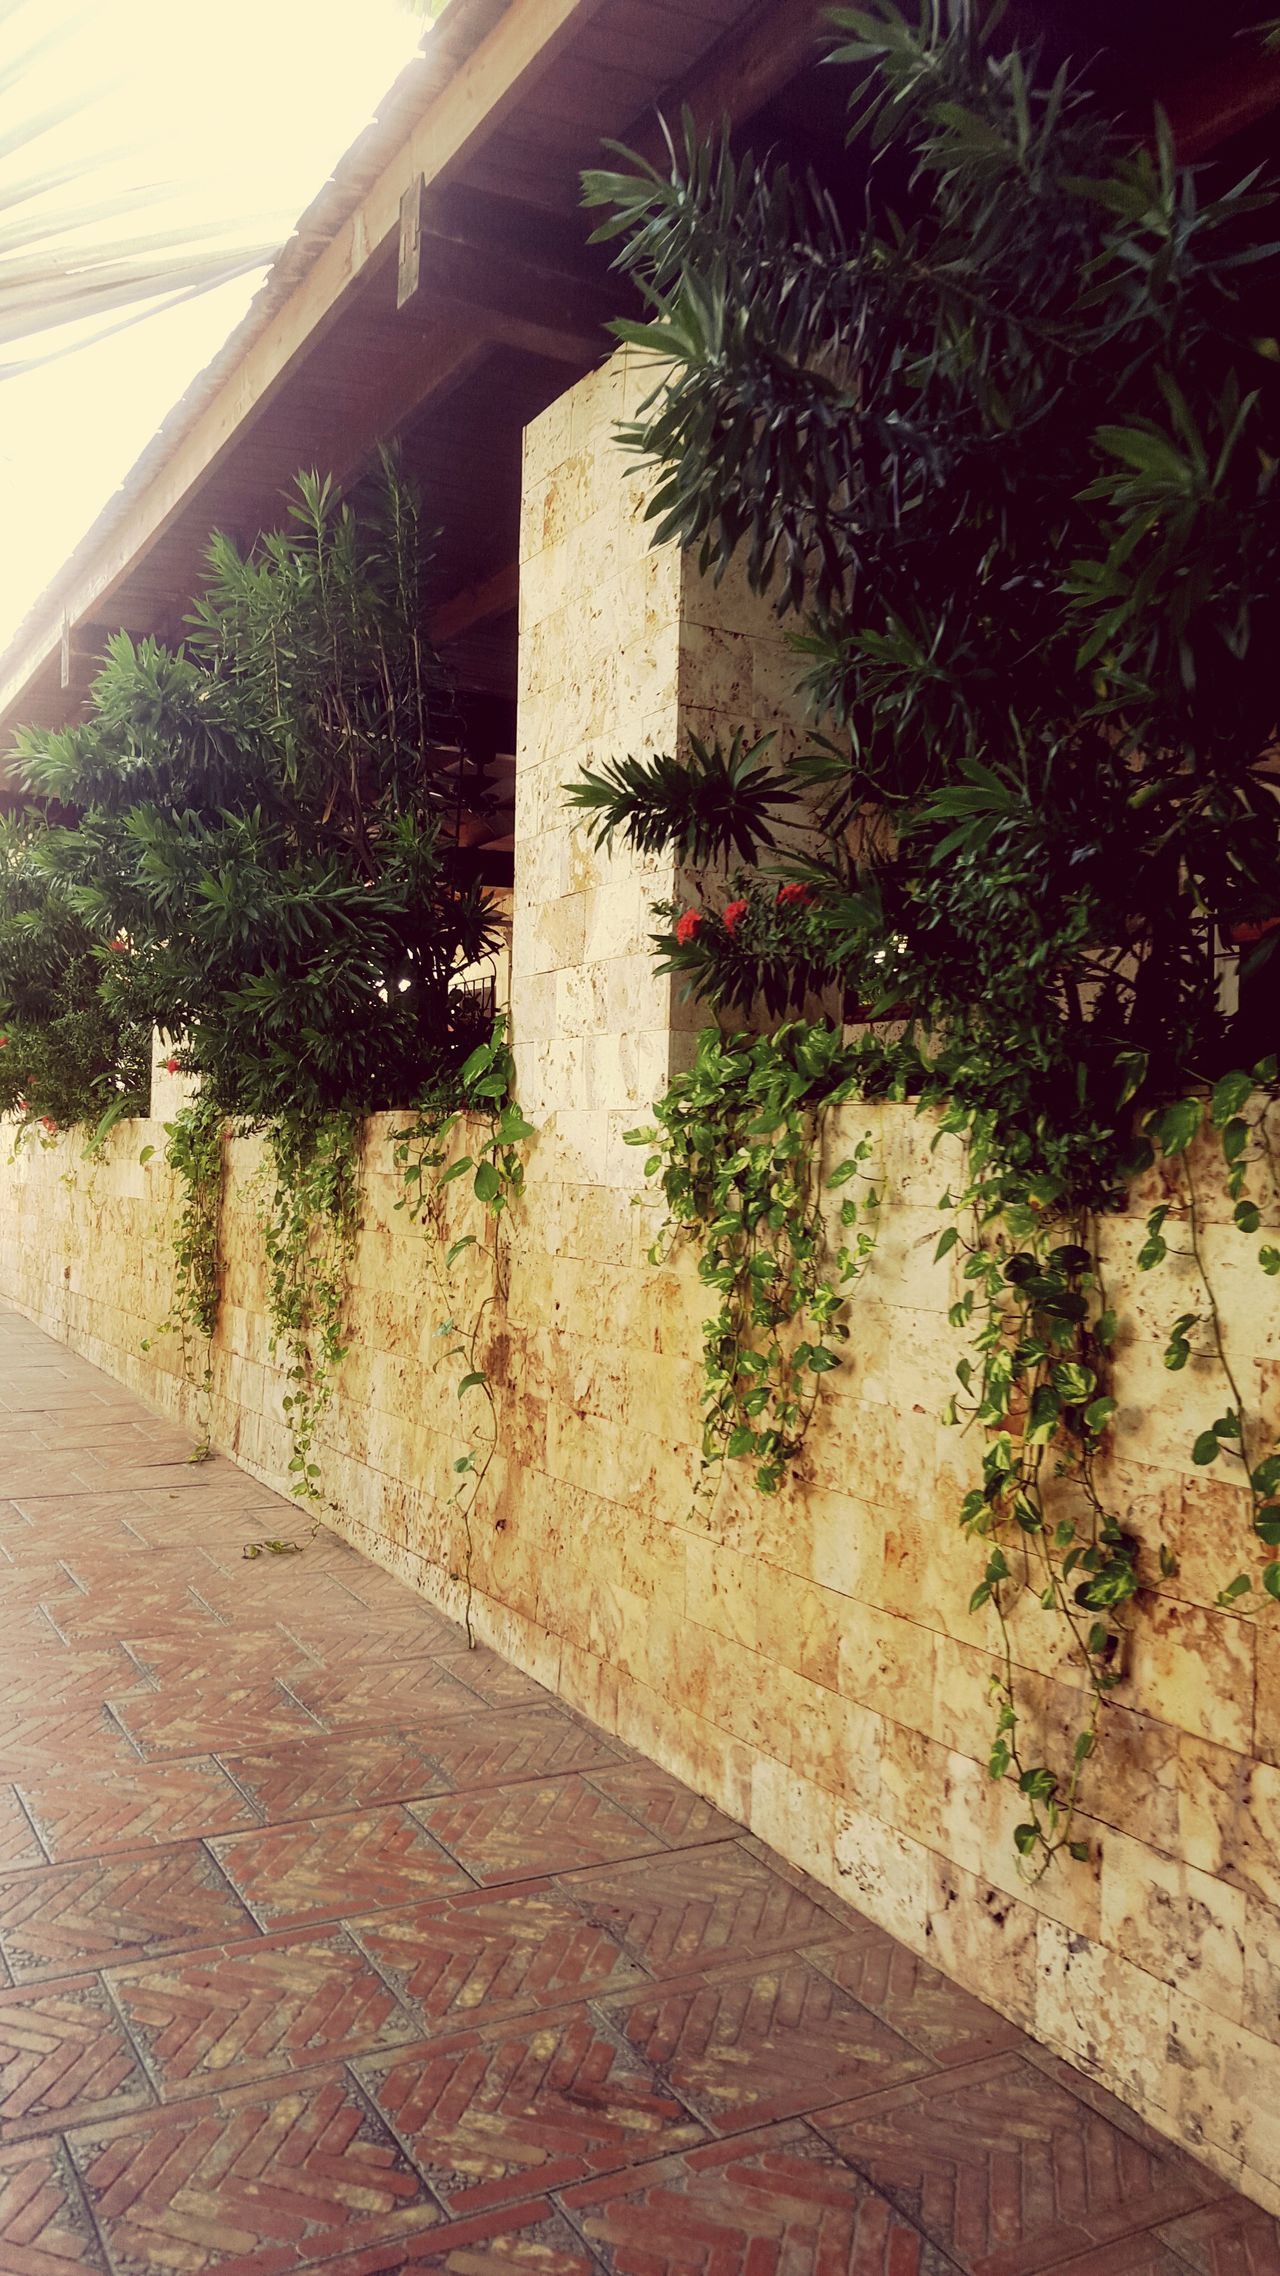 Nature claimed wall Plant Building Exterior Growth Outdoors Plant Life Vine Wall